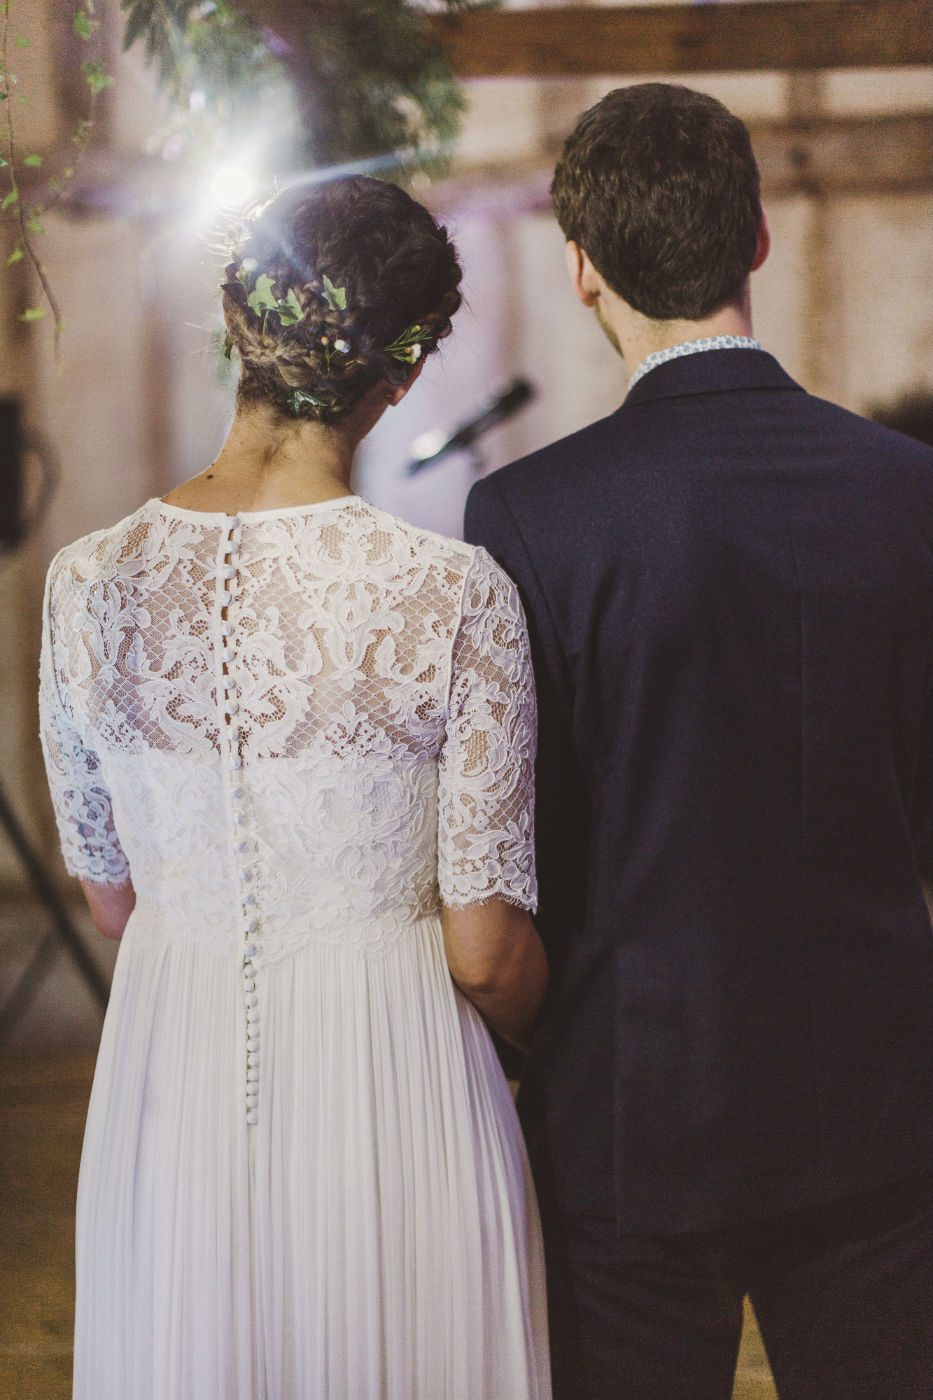 View More: http://razialife.pass.us/lily-and-richs-wedding